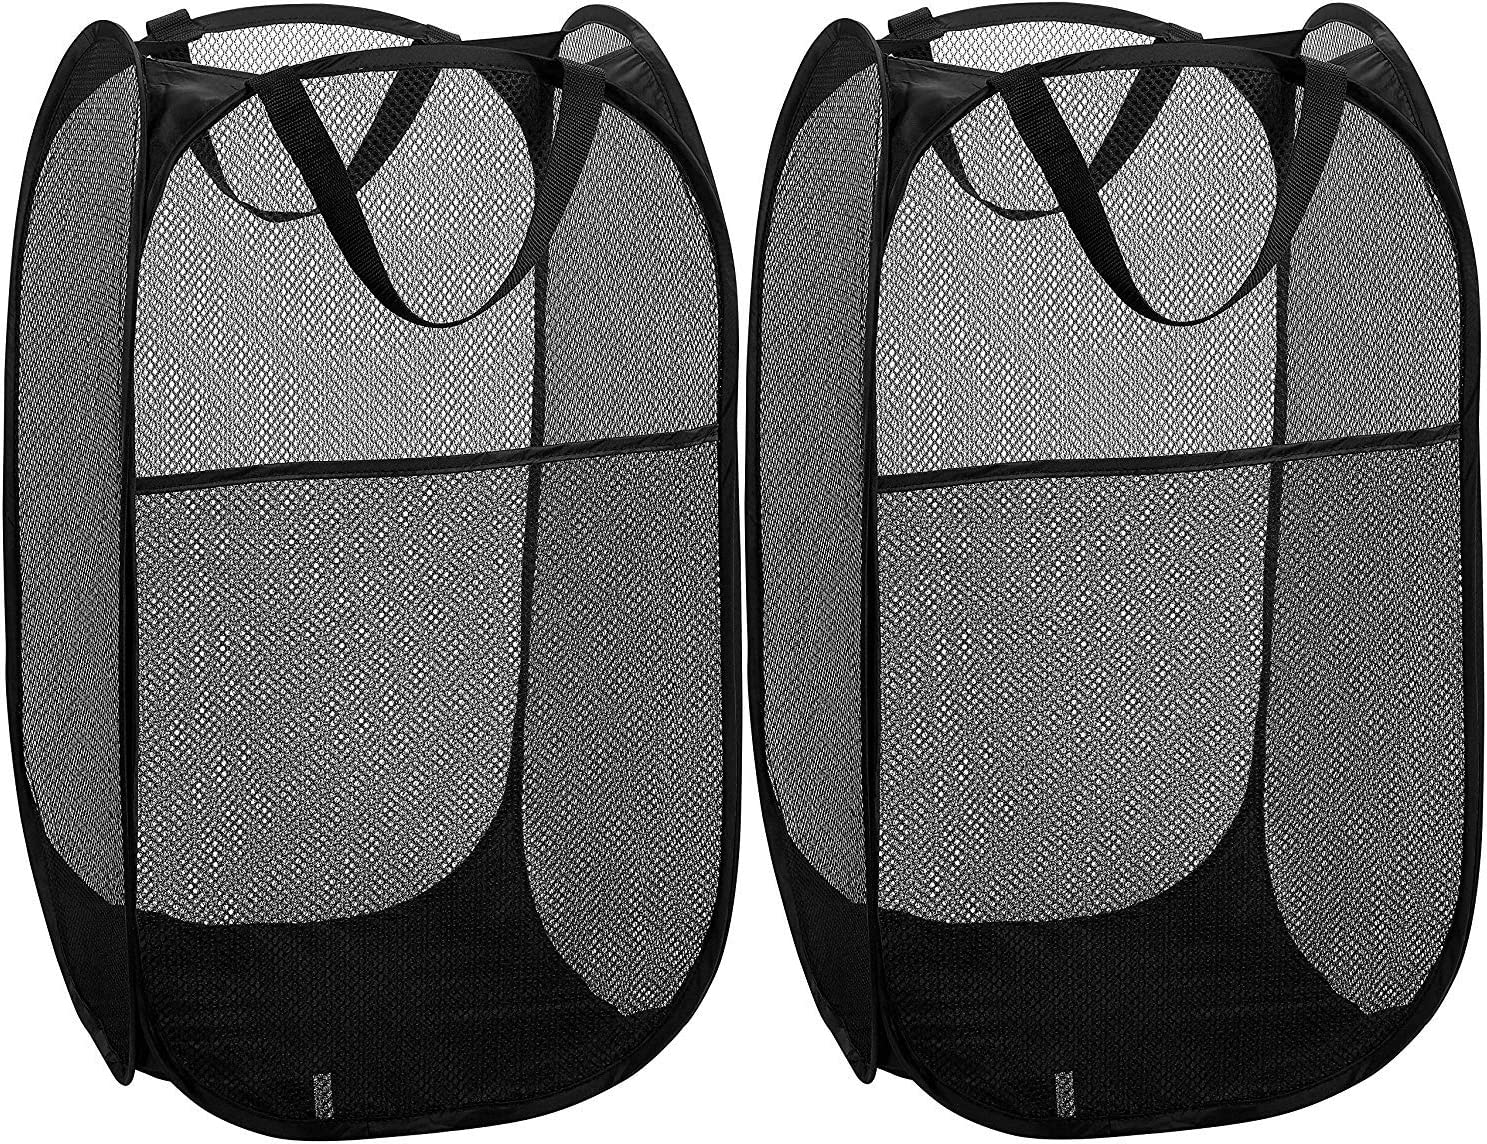 V-Shine Mesh Pop-Up Laundry Hamper, Collapsible Mesh Laundry Hamper Basket with Reinforced Carry Handles,Folding Pop-Up Clothes Hampers for Room, College Dorm or Travel (Black, 2Pack)